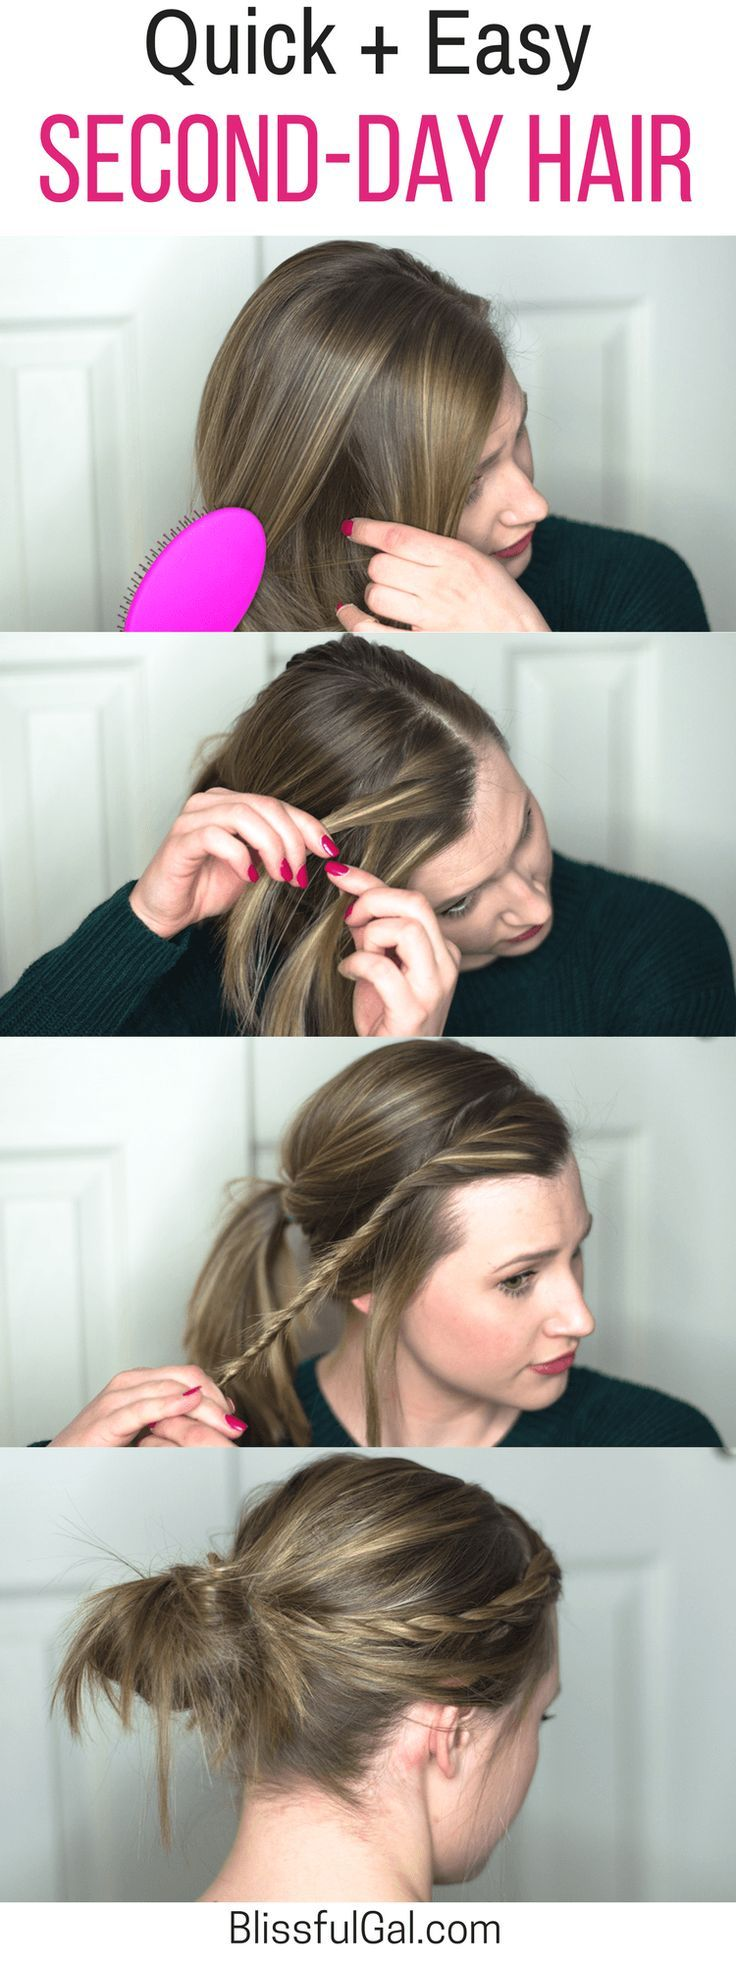 best 25+ second day hairstyles ideas on pinterest | 5 minute